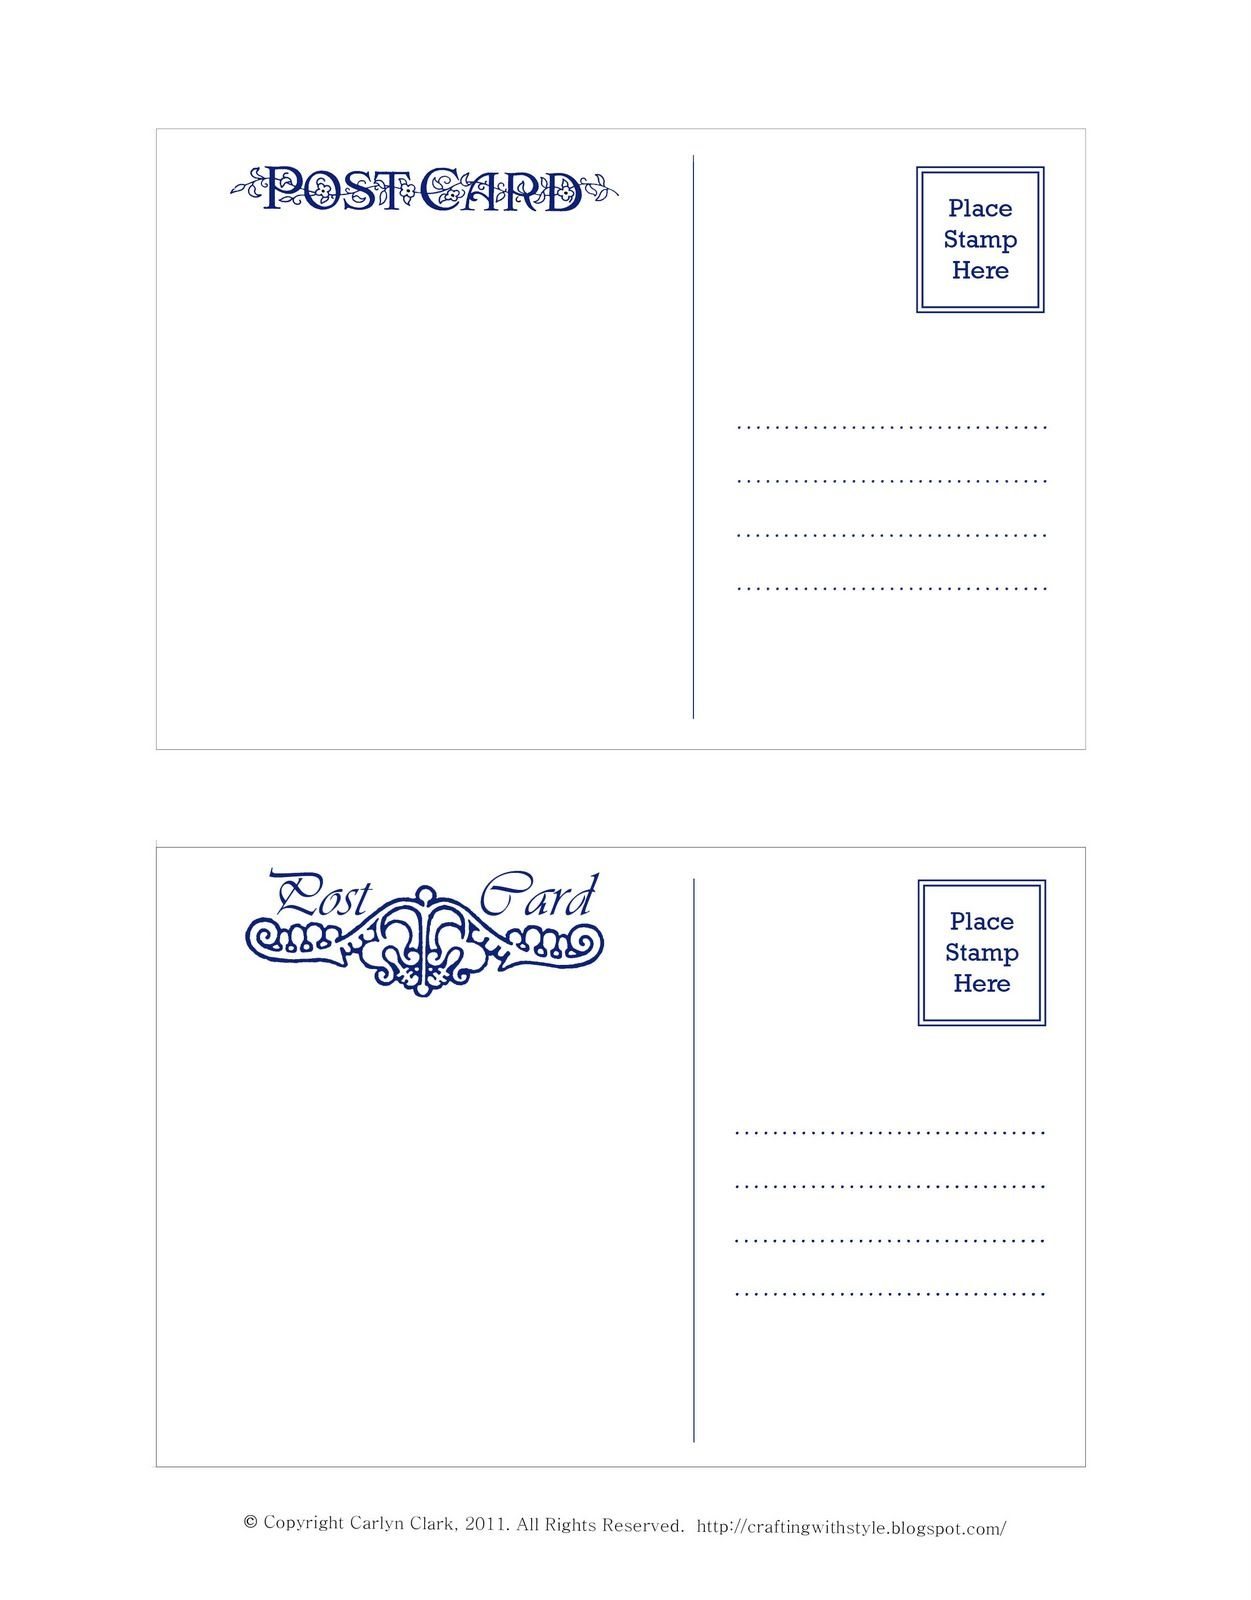 Free Postcard Templates For Word Blank Postcard Template Free Premium  Templates, Postcard Template Word Free Business Template, Postcard Template  40 Free ...  Free Postcard Templates Microsoft Word